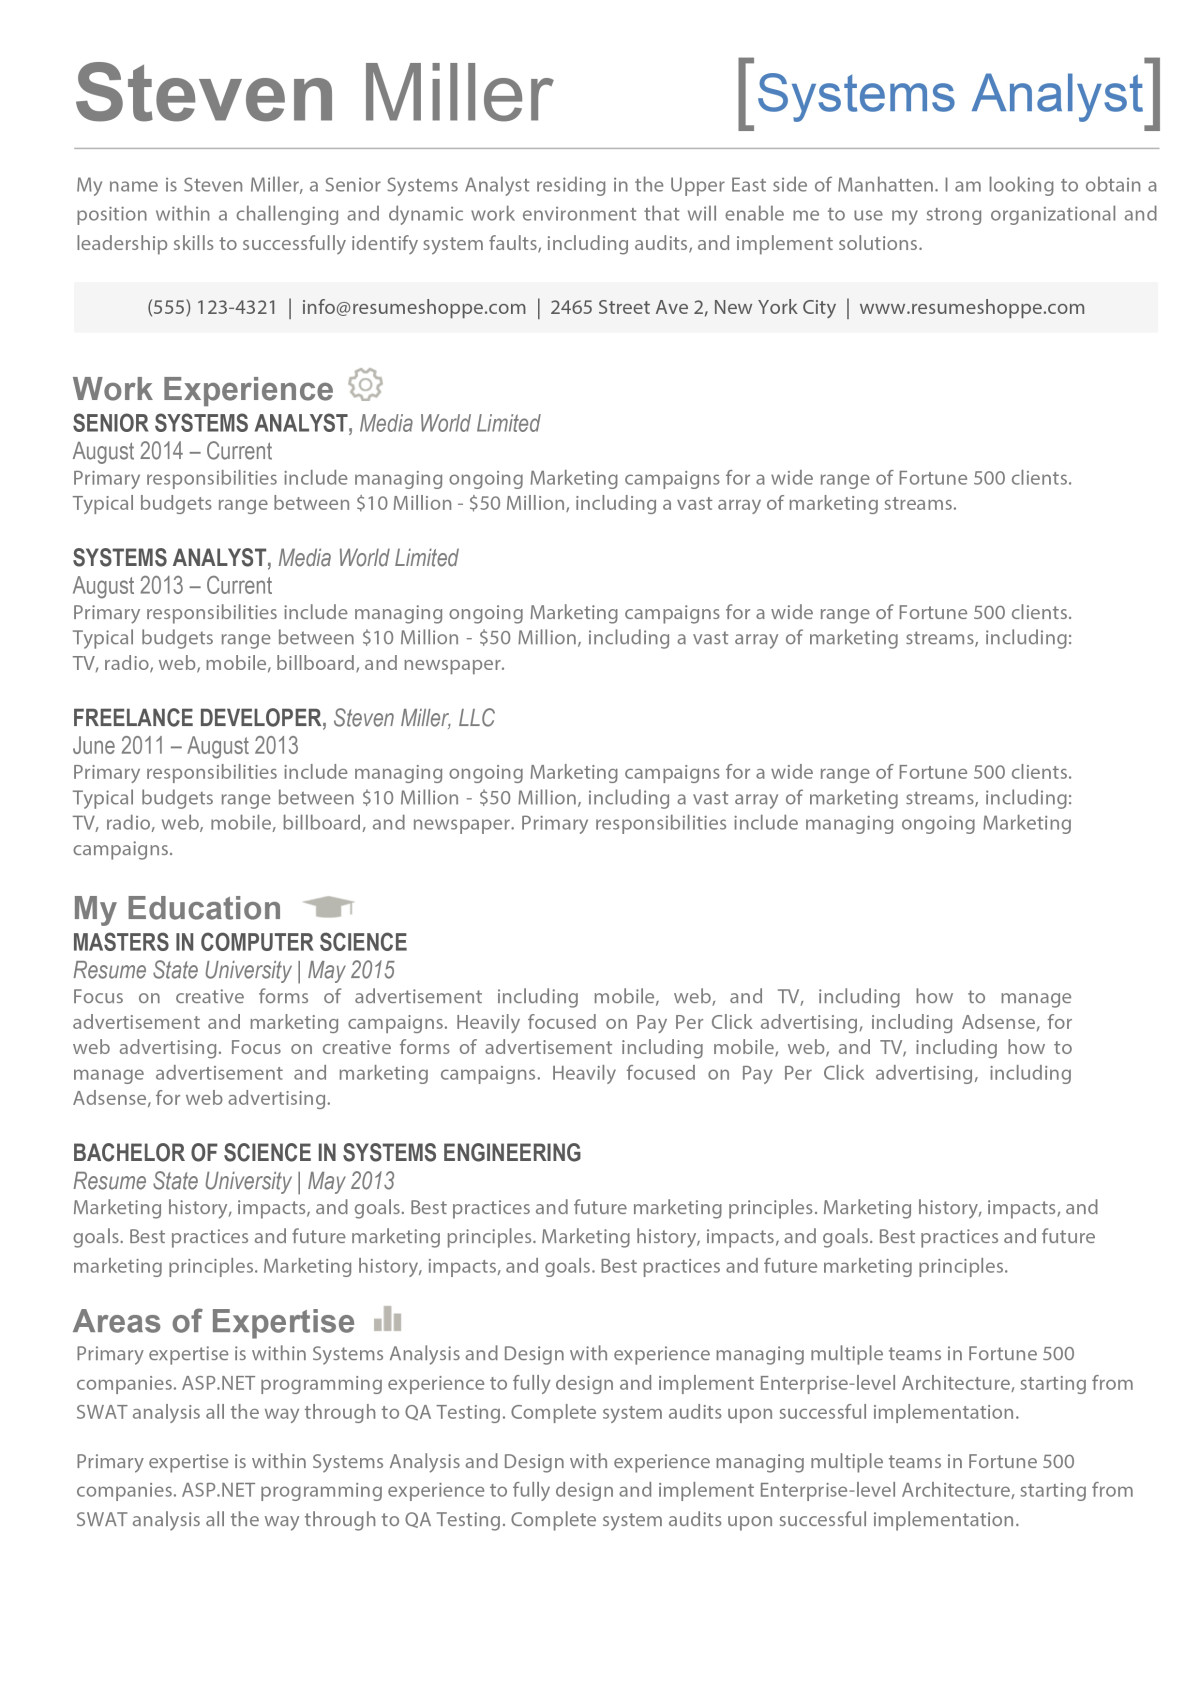 The Steven Resume  Creative Resume